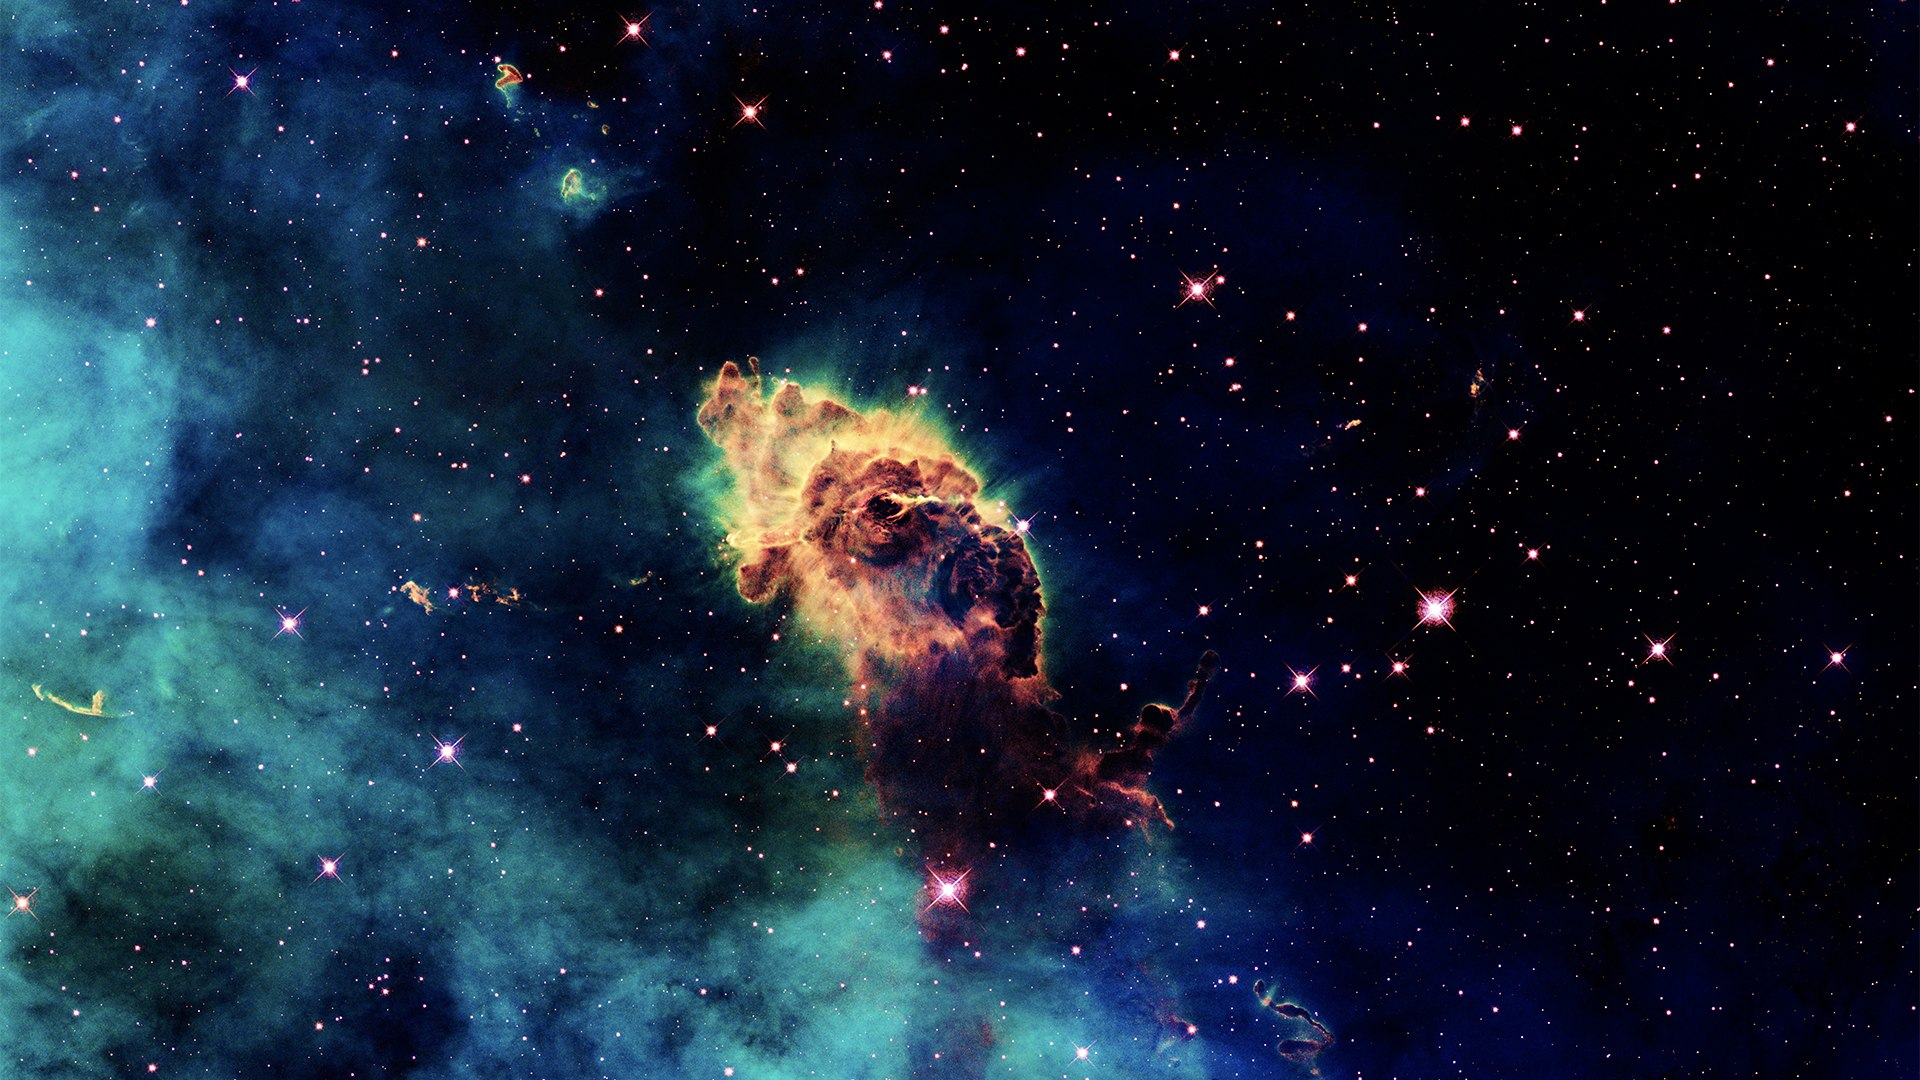 space hd 1920x1200 - photo #36